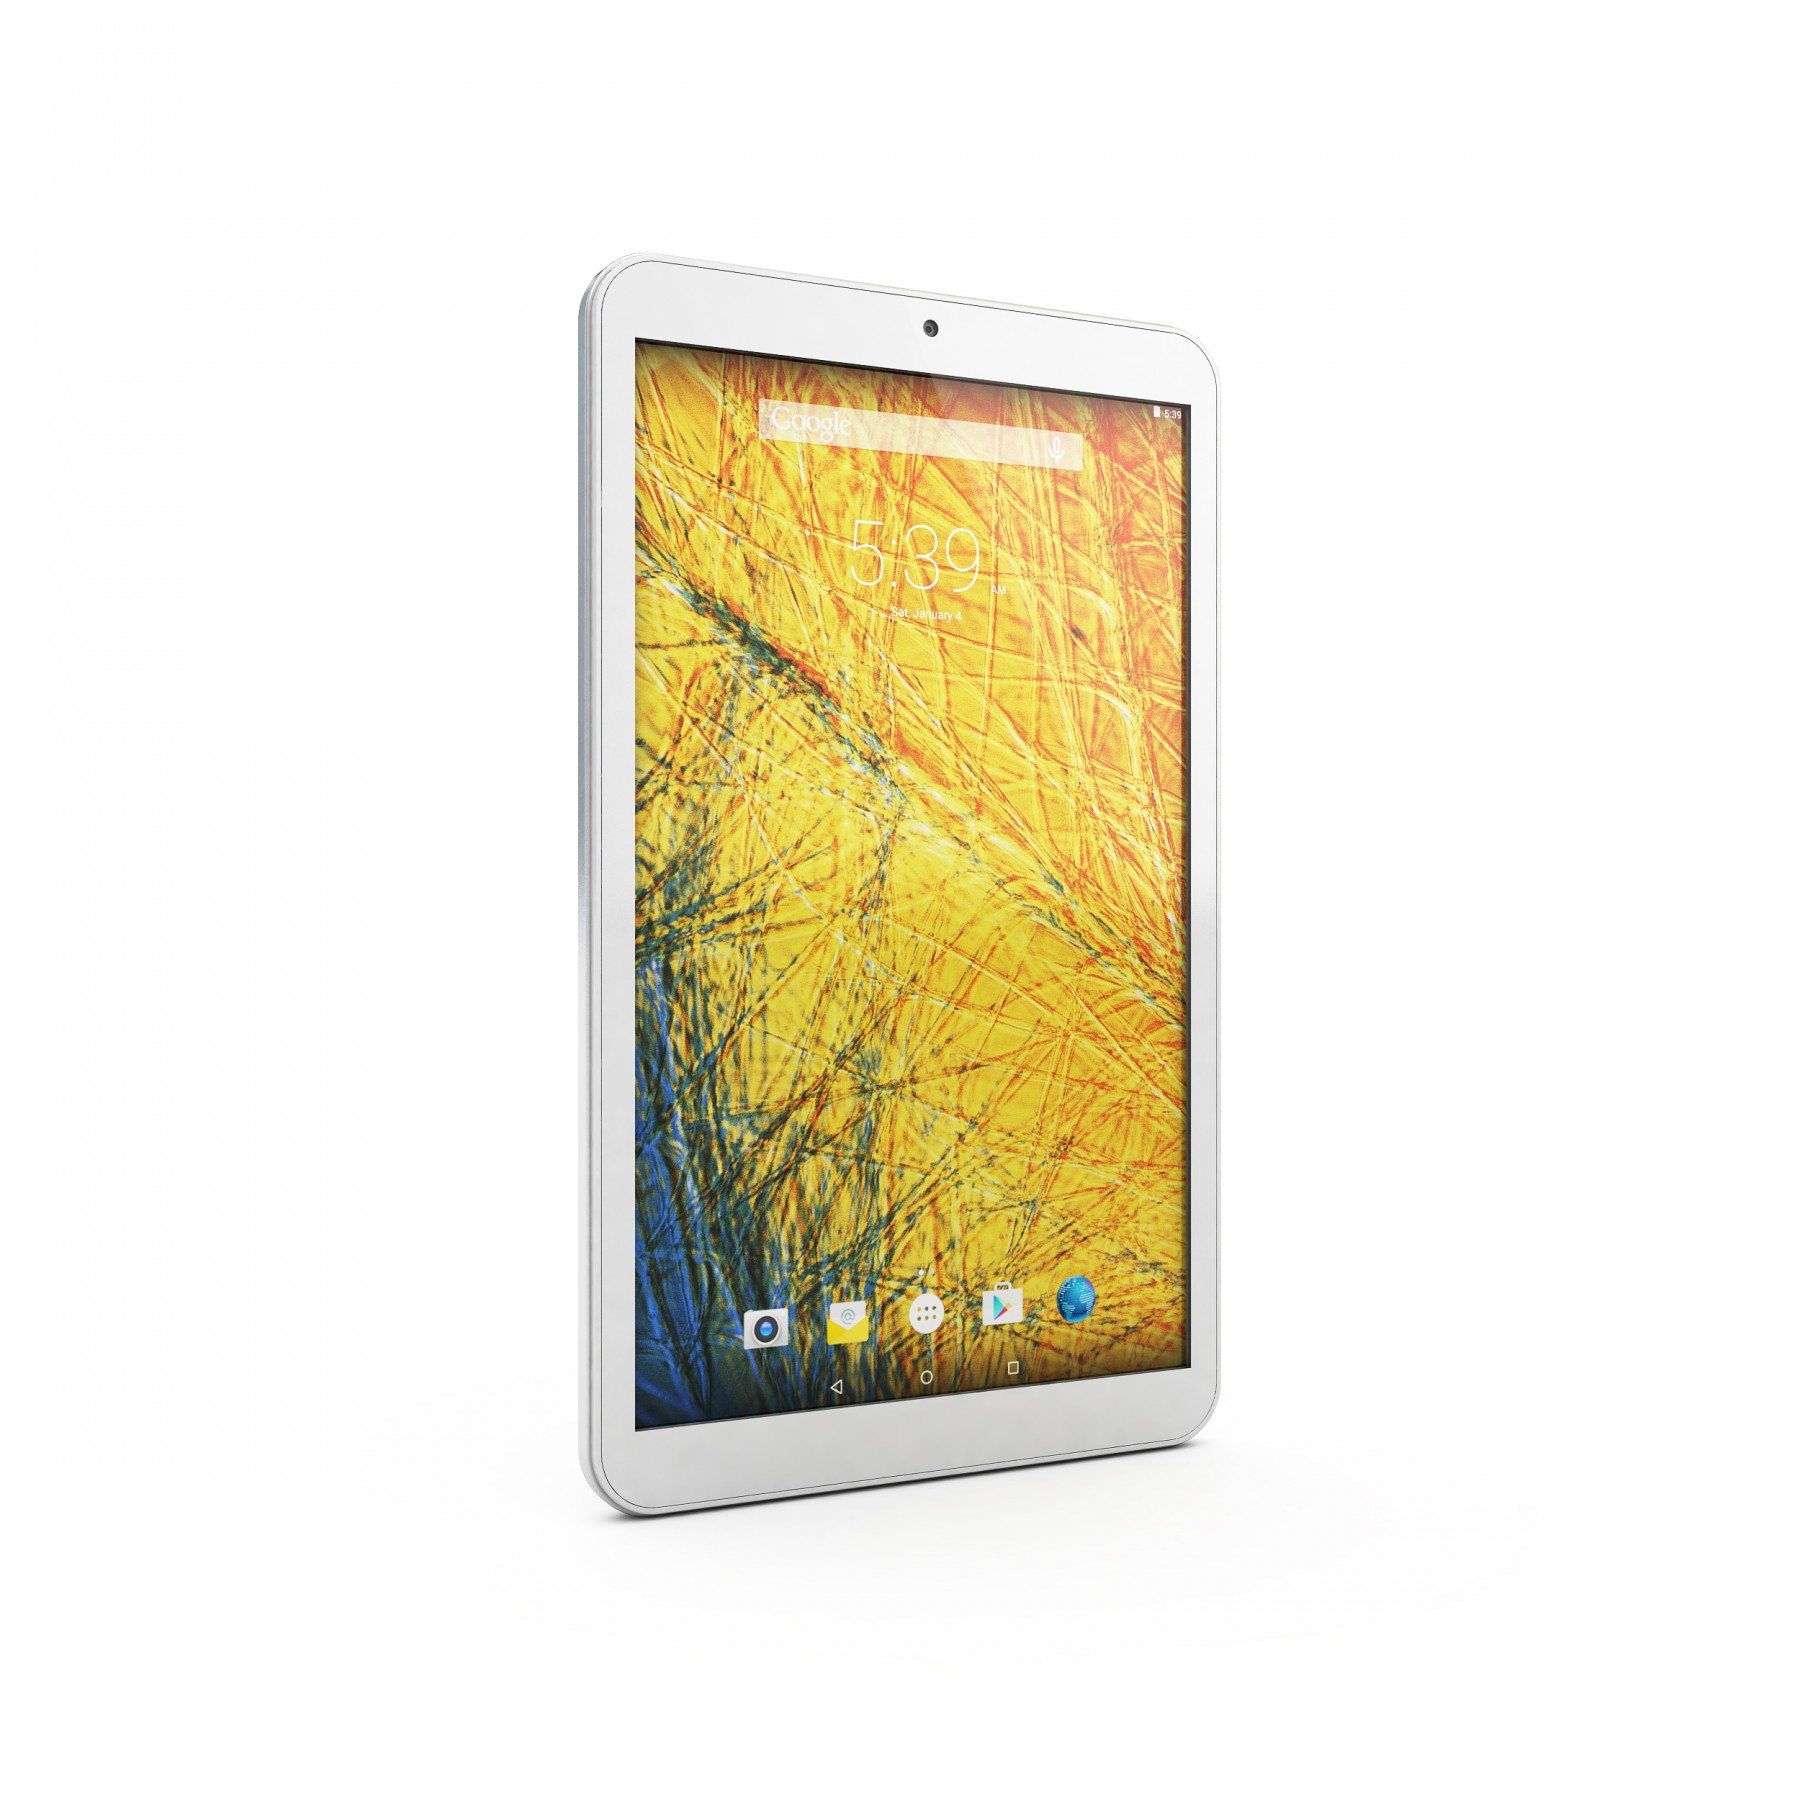 "Hipstreet Electron 8"" Quad Core Google Certified Android Tablet 2.0MP Camera 8GB - White"